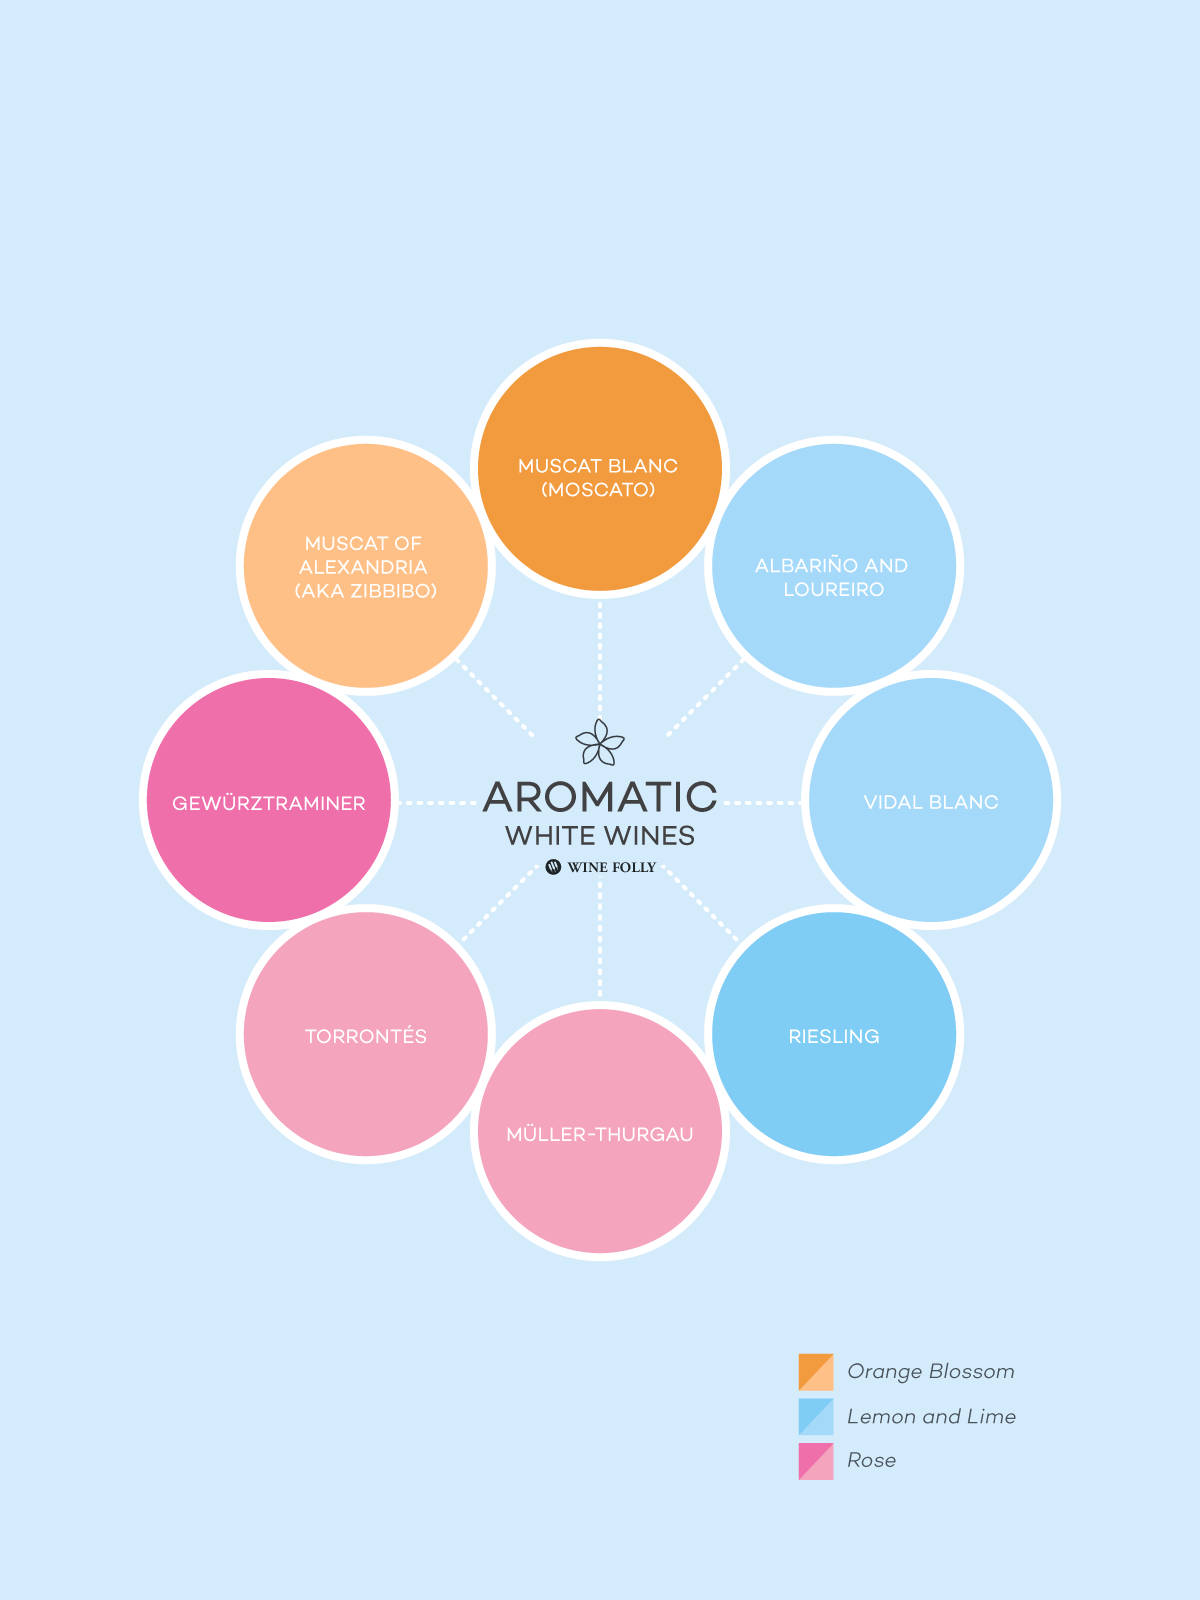 Aromatic White Wines by Wine Folly